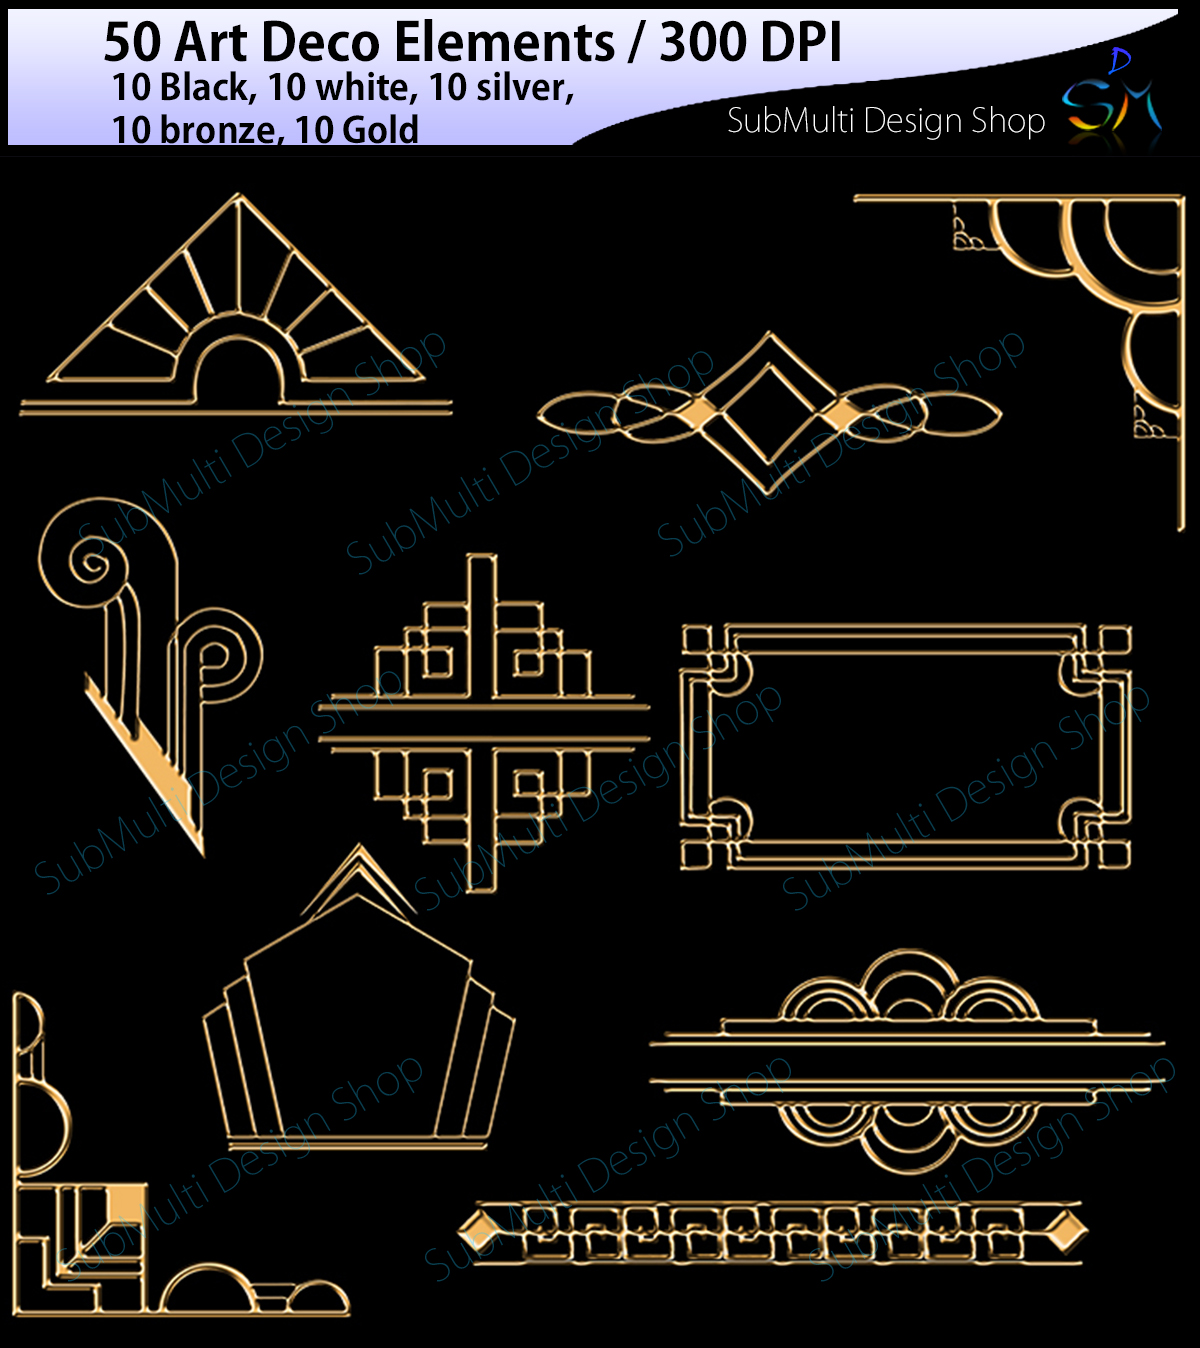 50 art deco elements graphic by arcs multidesigns - Art deco design elements ...